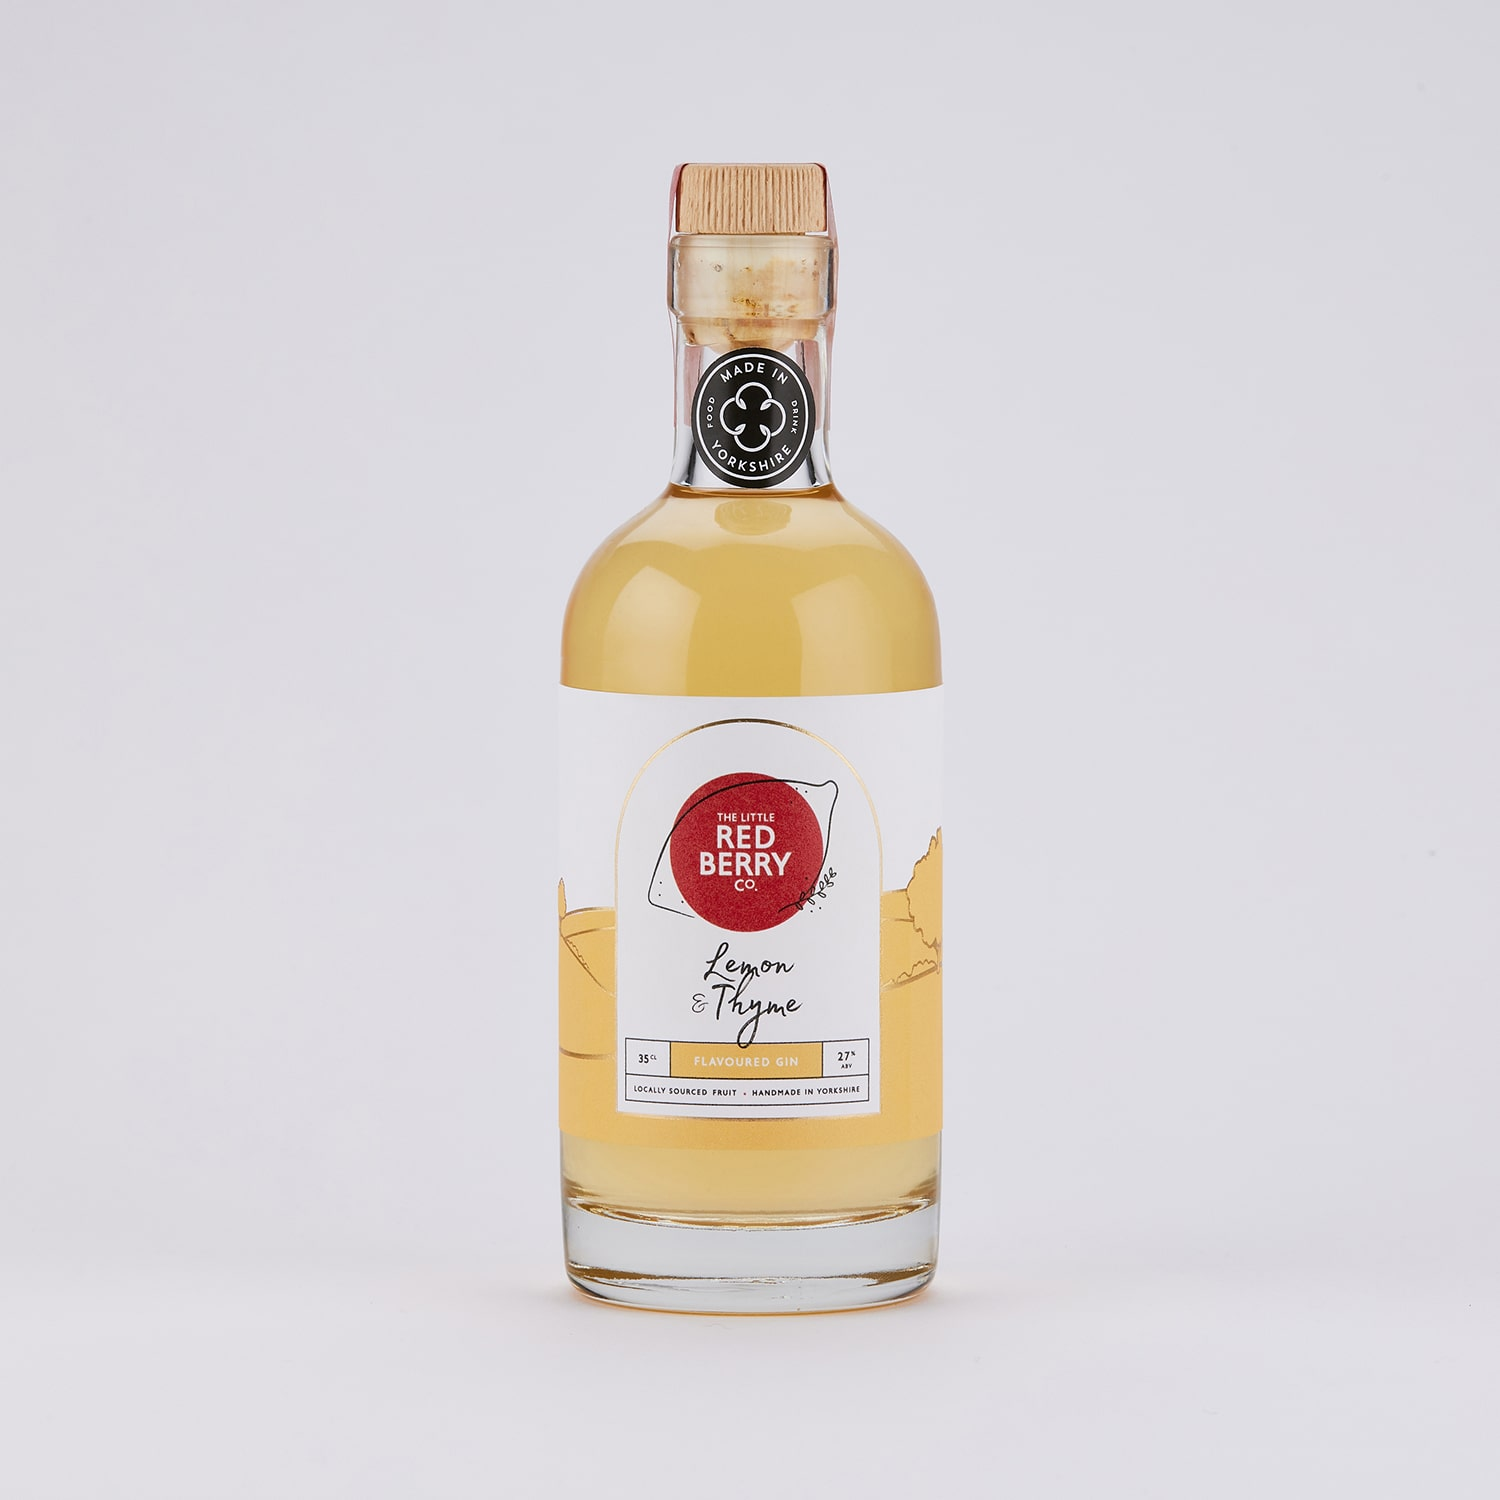 35cl Lemon & Thyme Flavoured Gin